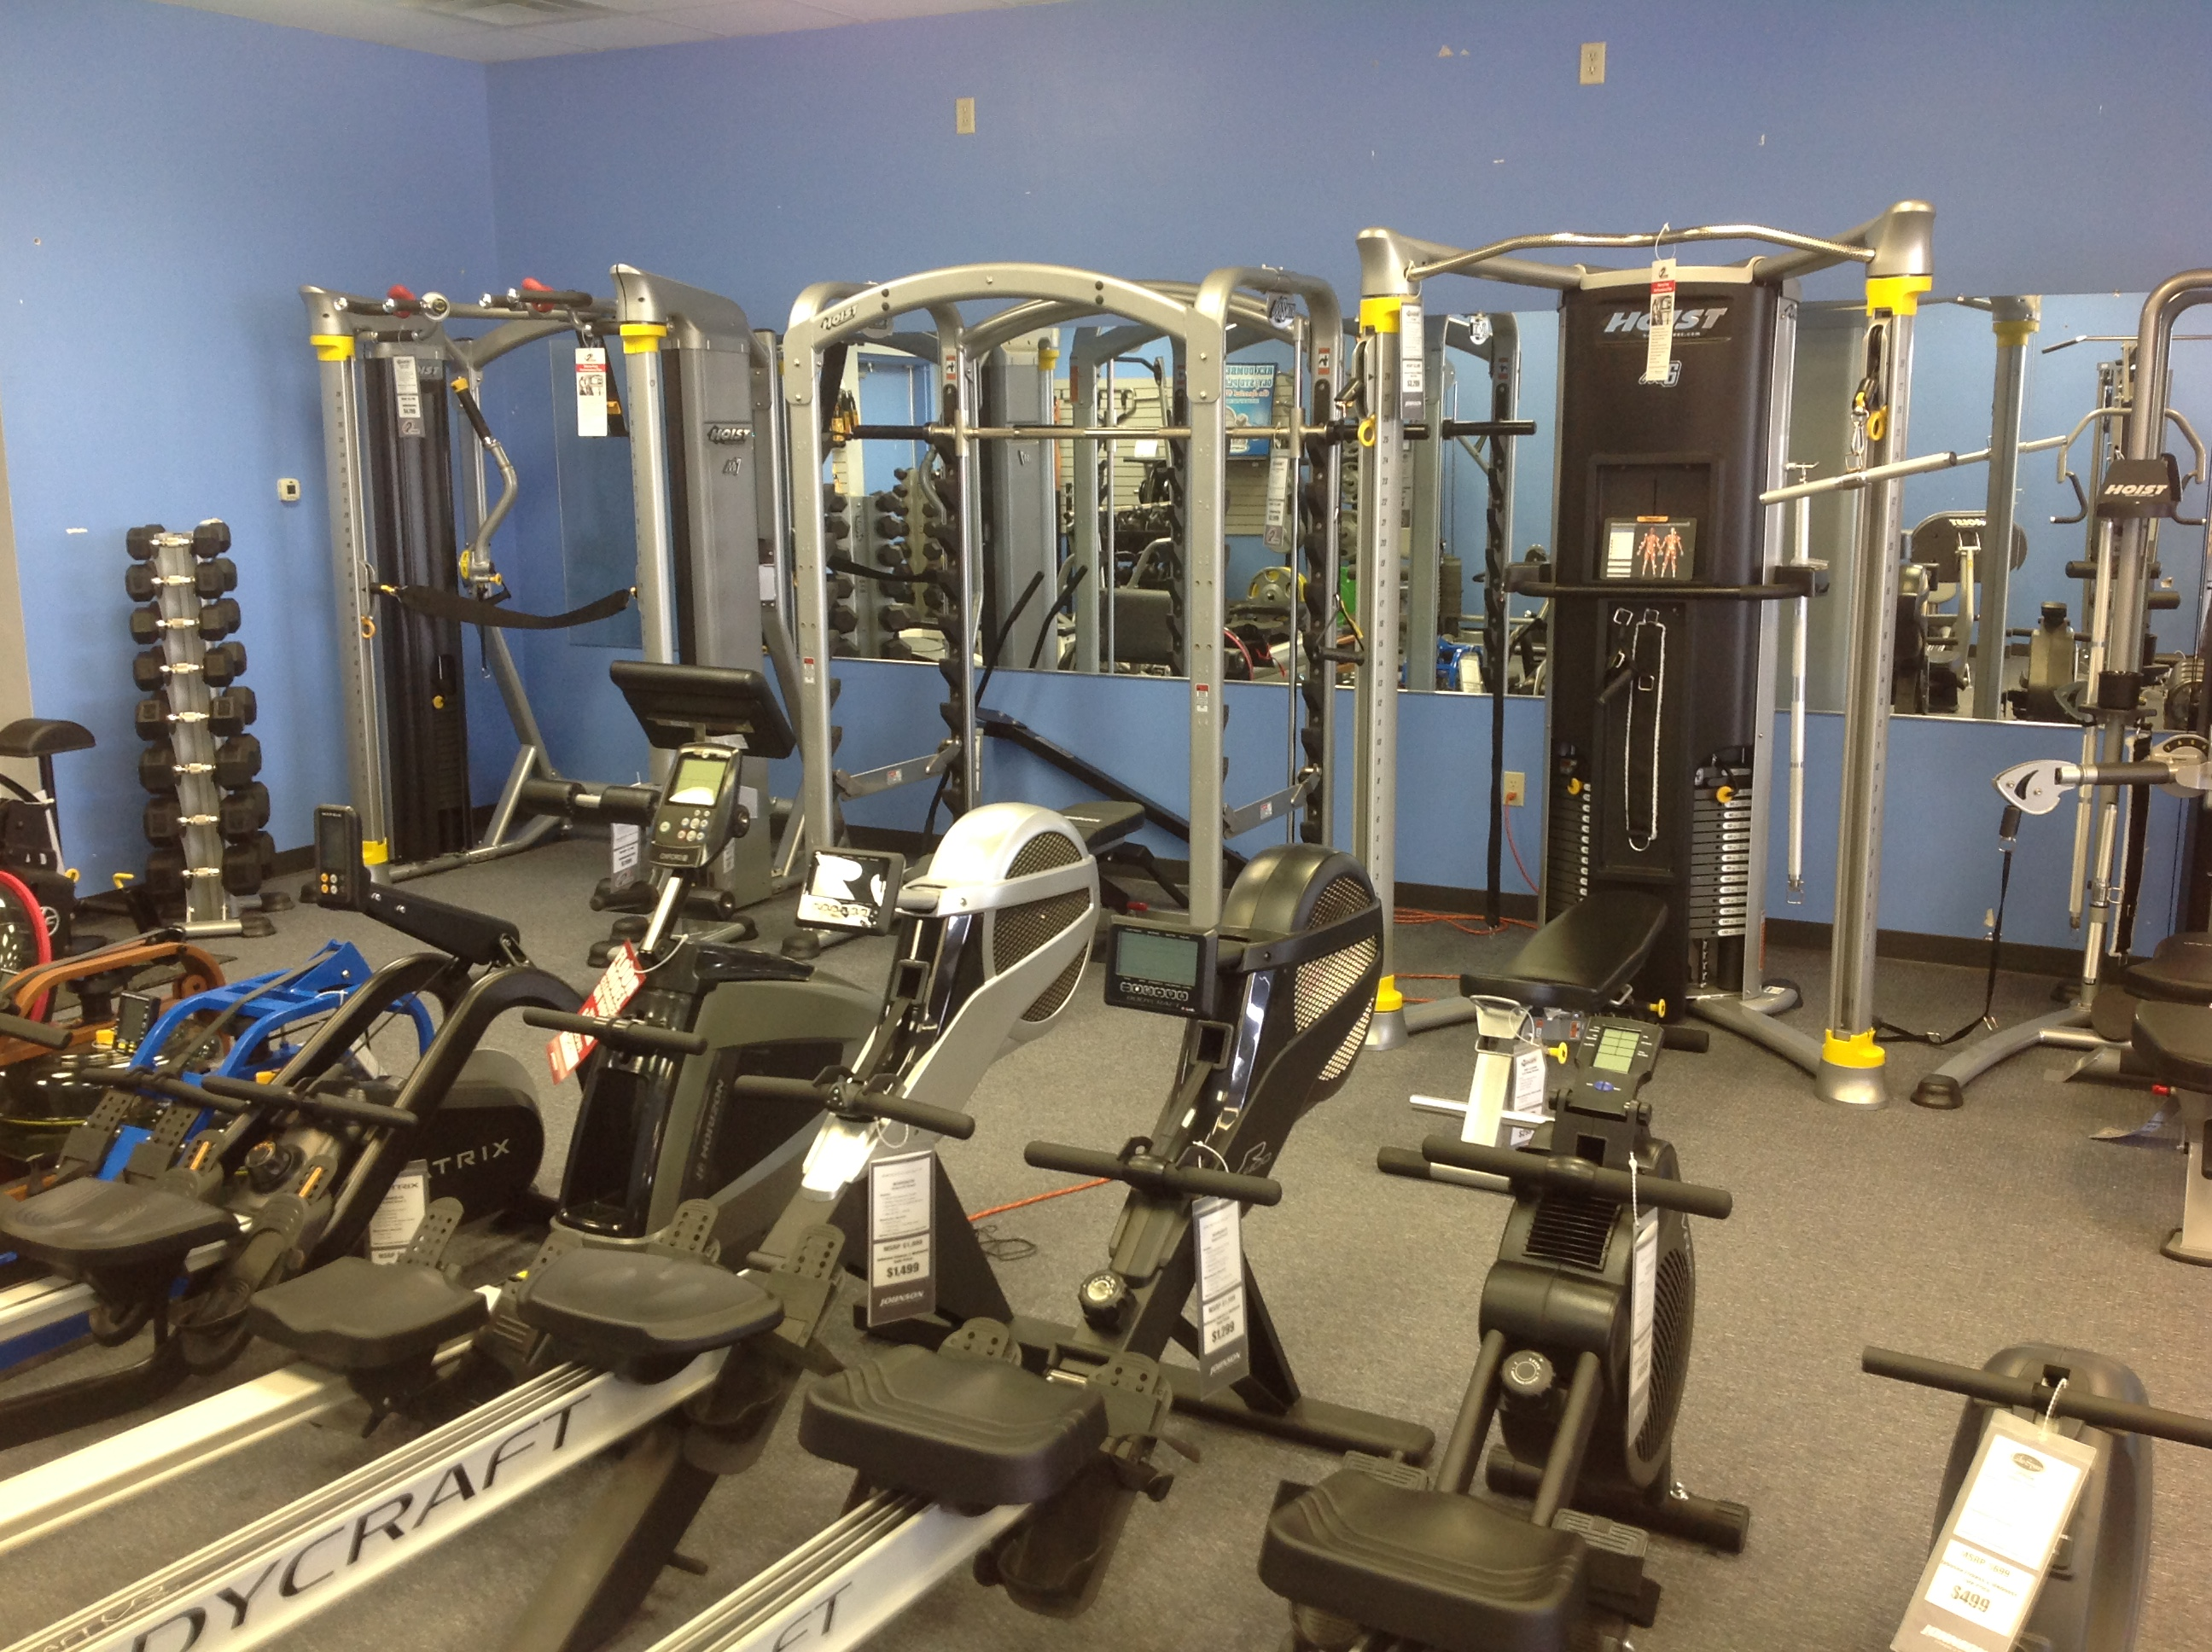 Johnson Fitness & Wellness - Appleton, WI